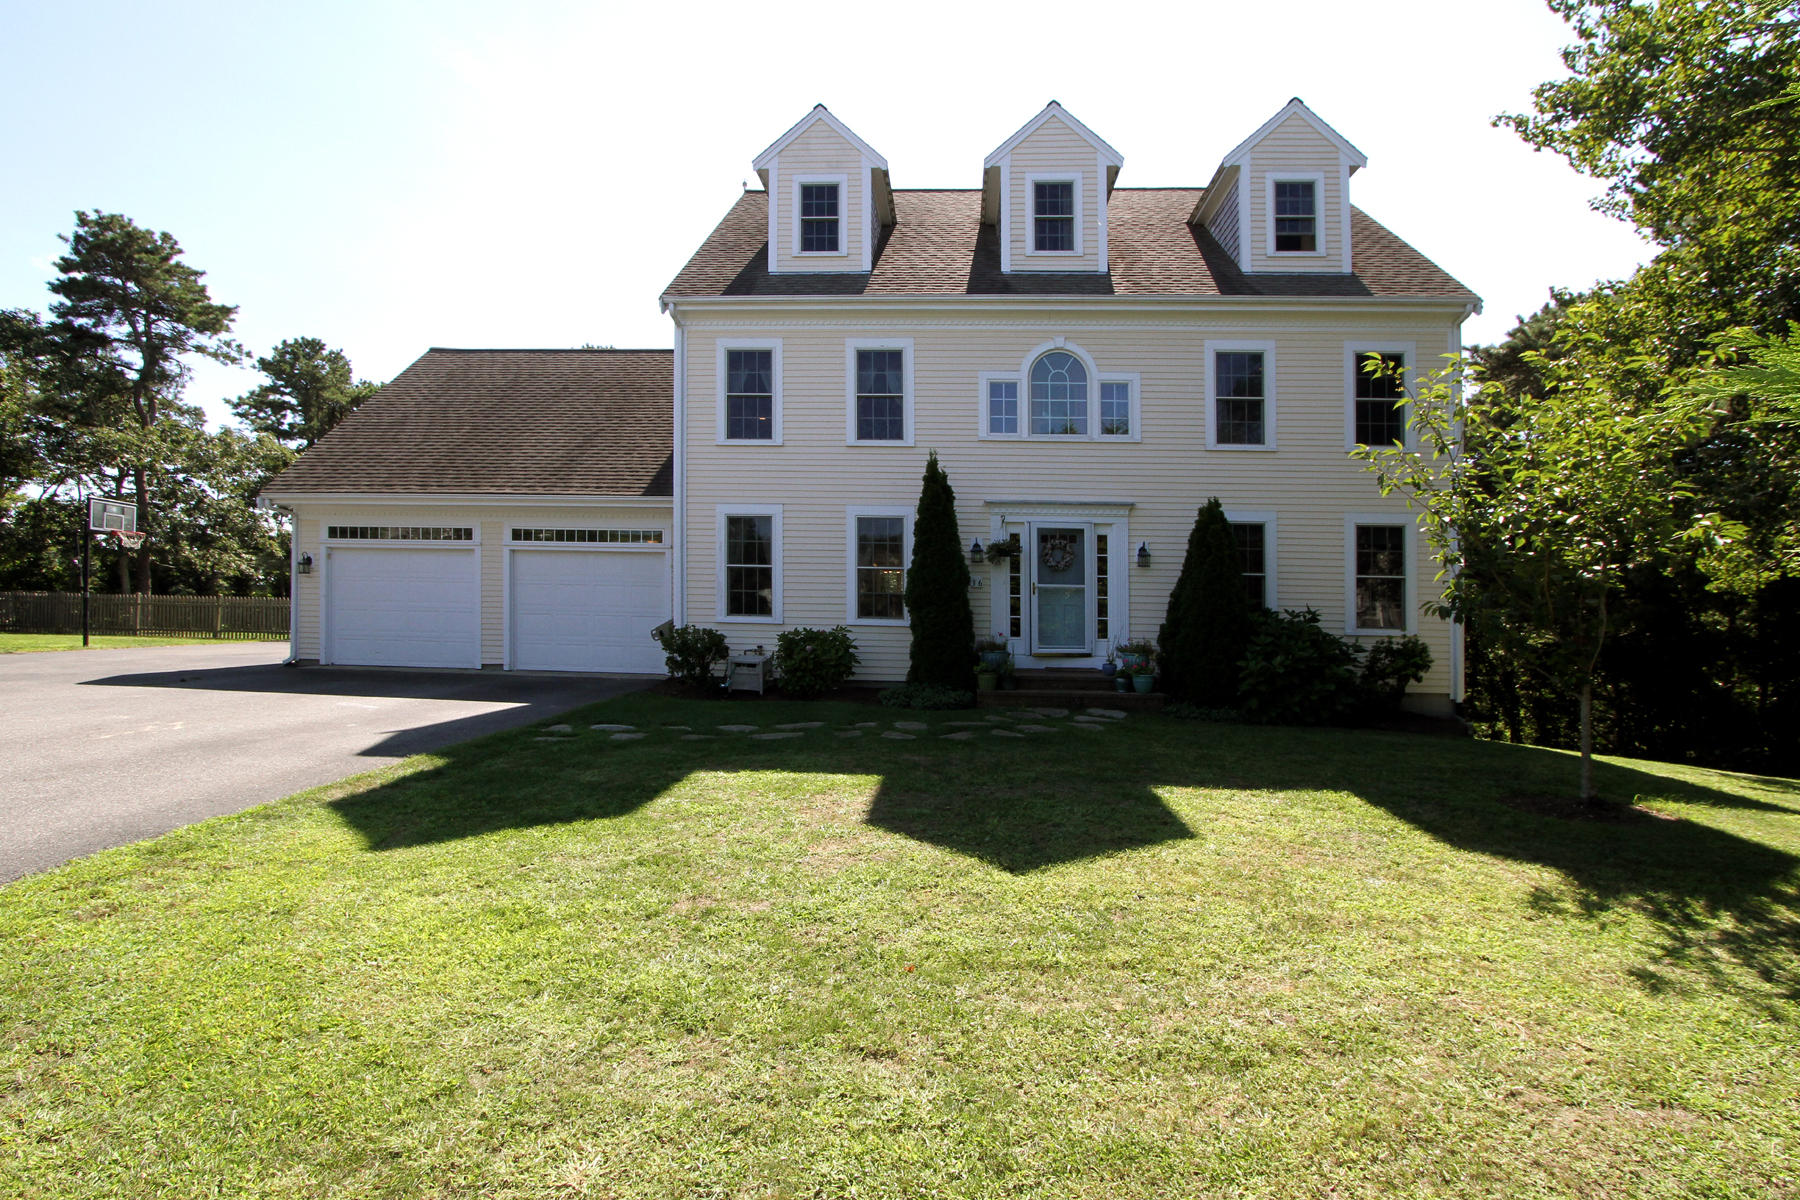 Single Family Home for Active at 36 Old Carriage Drive, Harwich, MA 36 Old Carriage Drive Harwich, Massachusetts 02645 United States